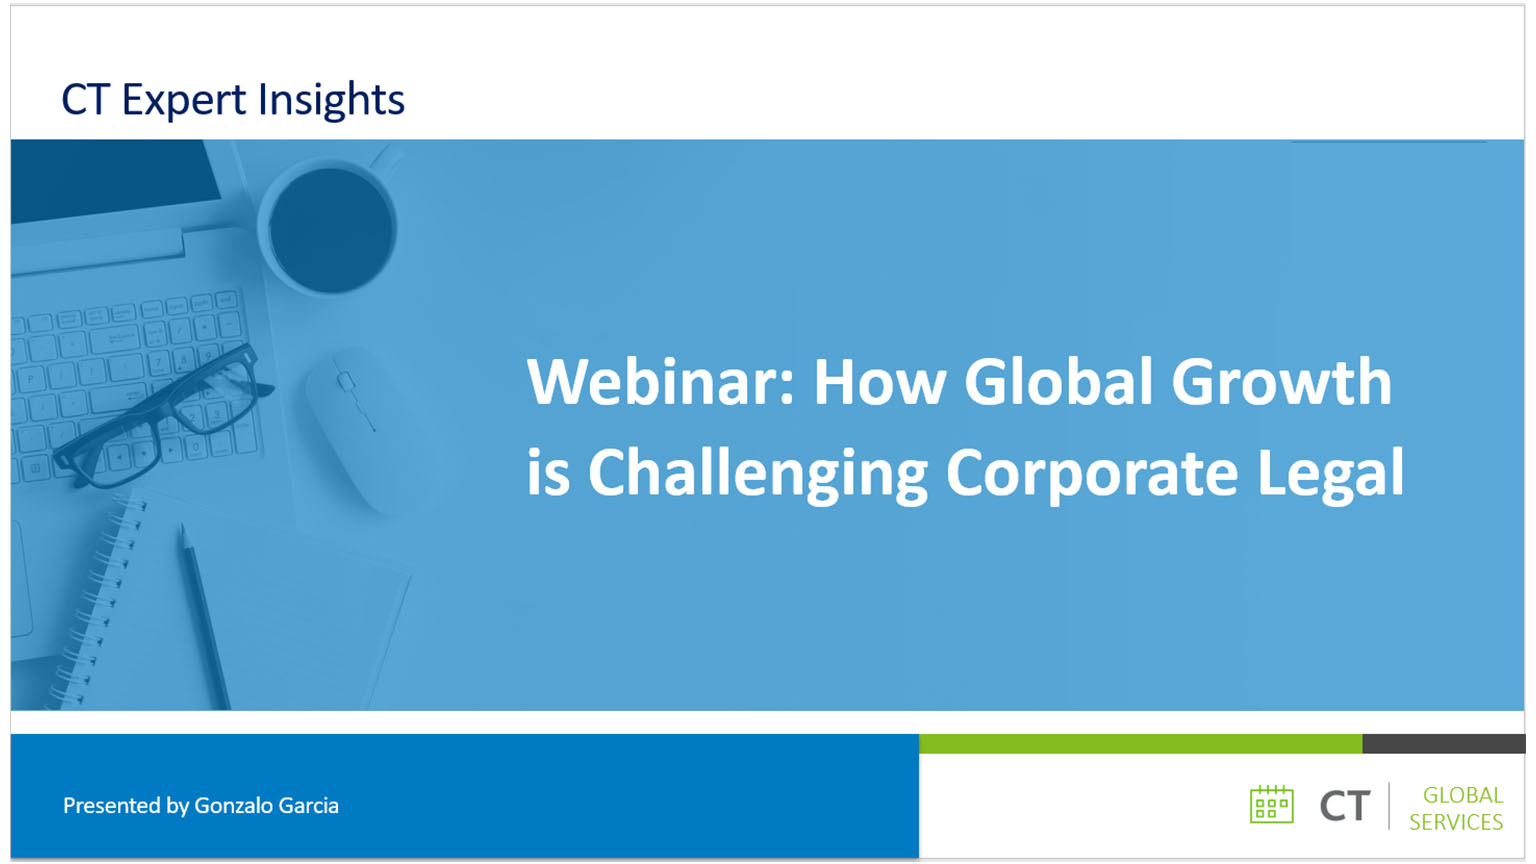 Webinar: How Global Growth is Challenging Corporate Legal